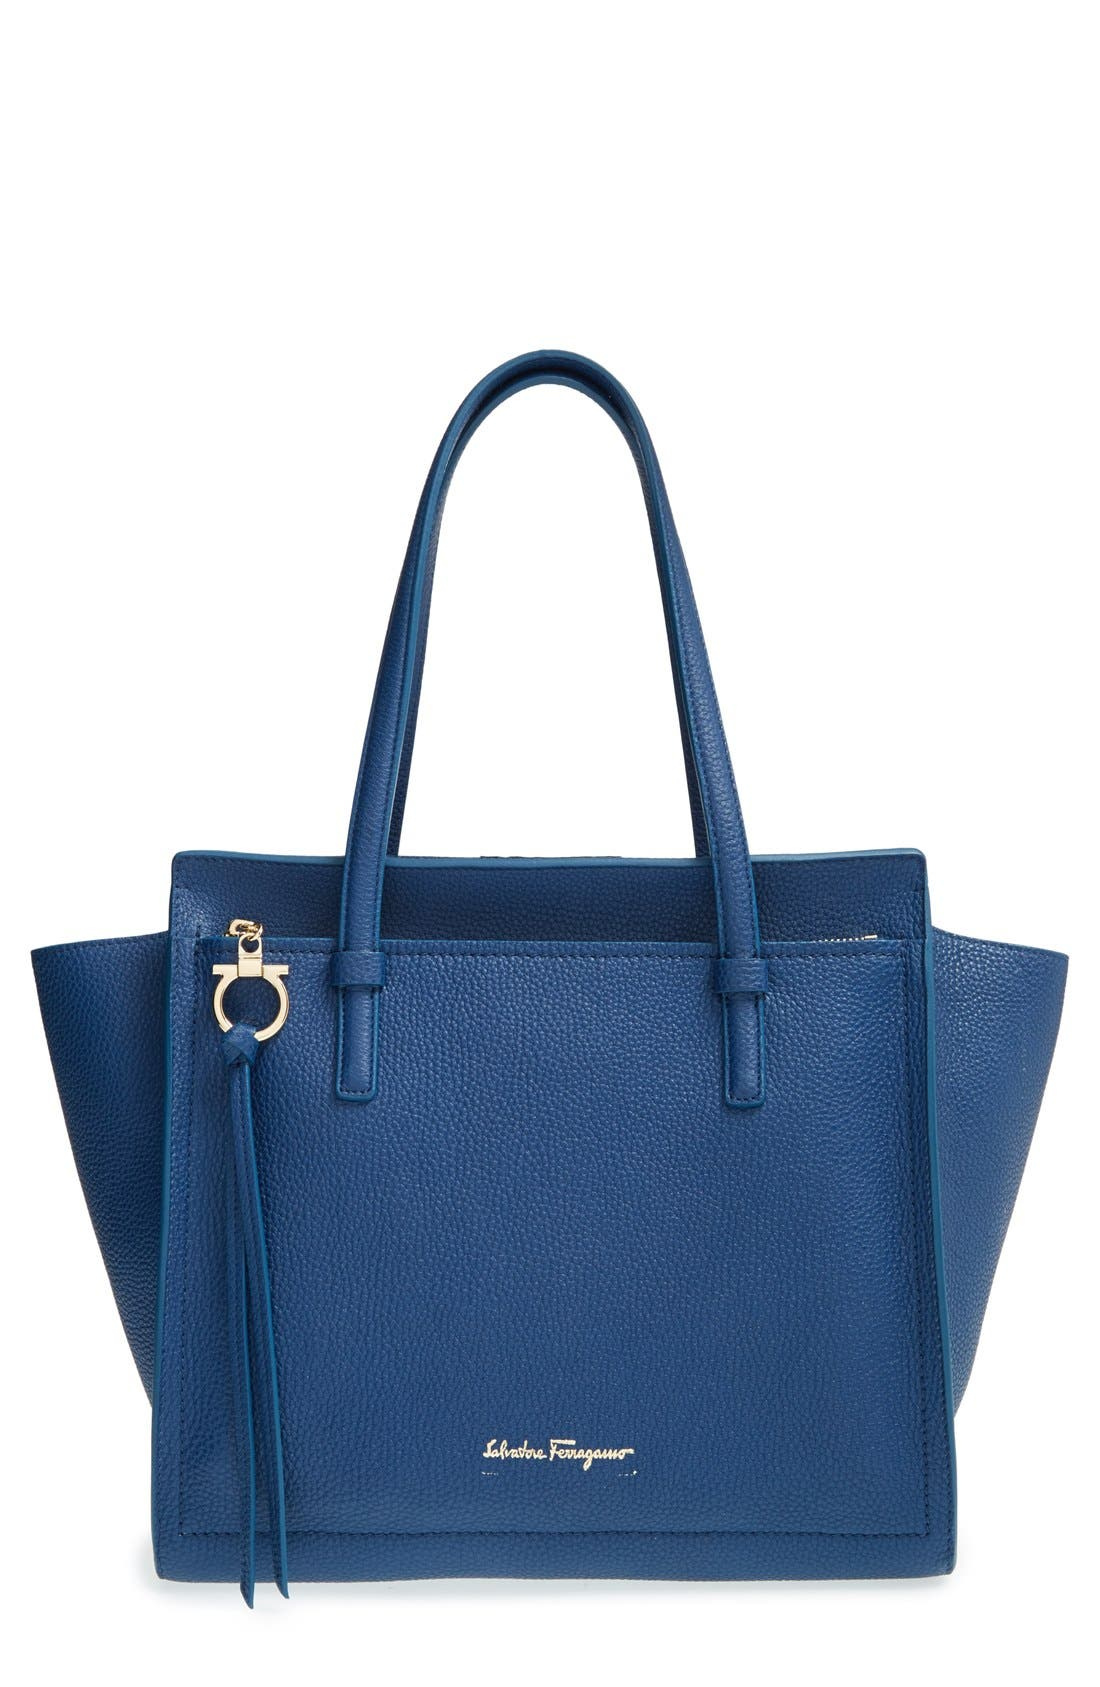 'Small Amy' Calfskin Leather Tote, Main, color, 400